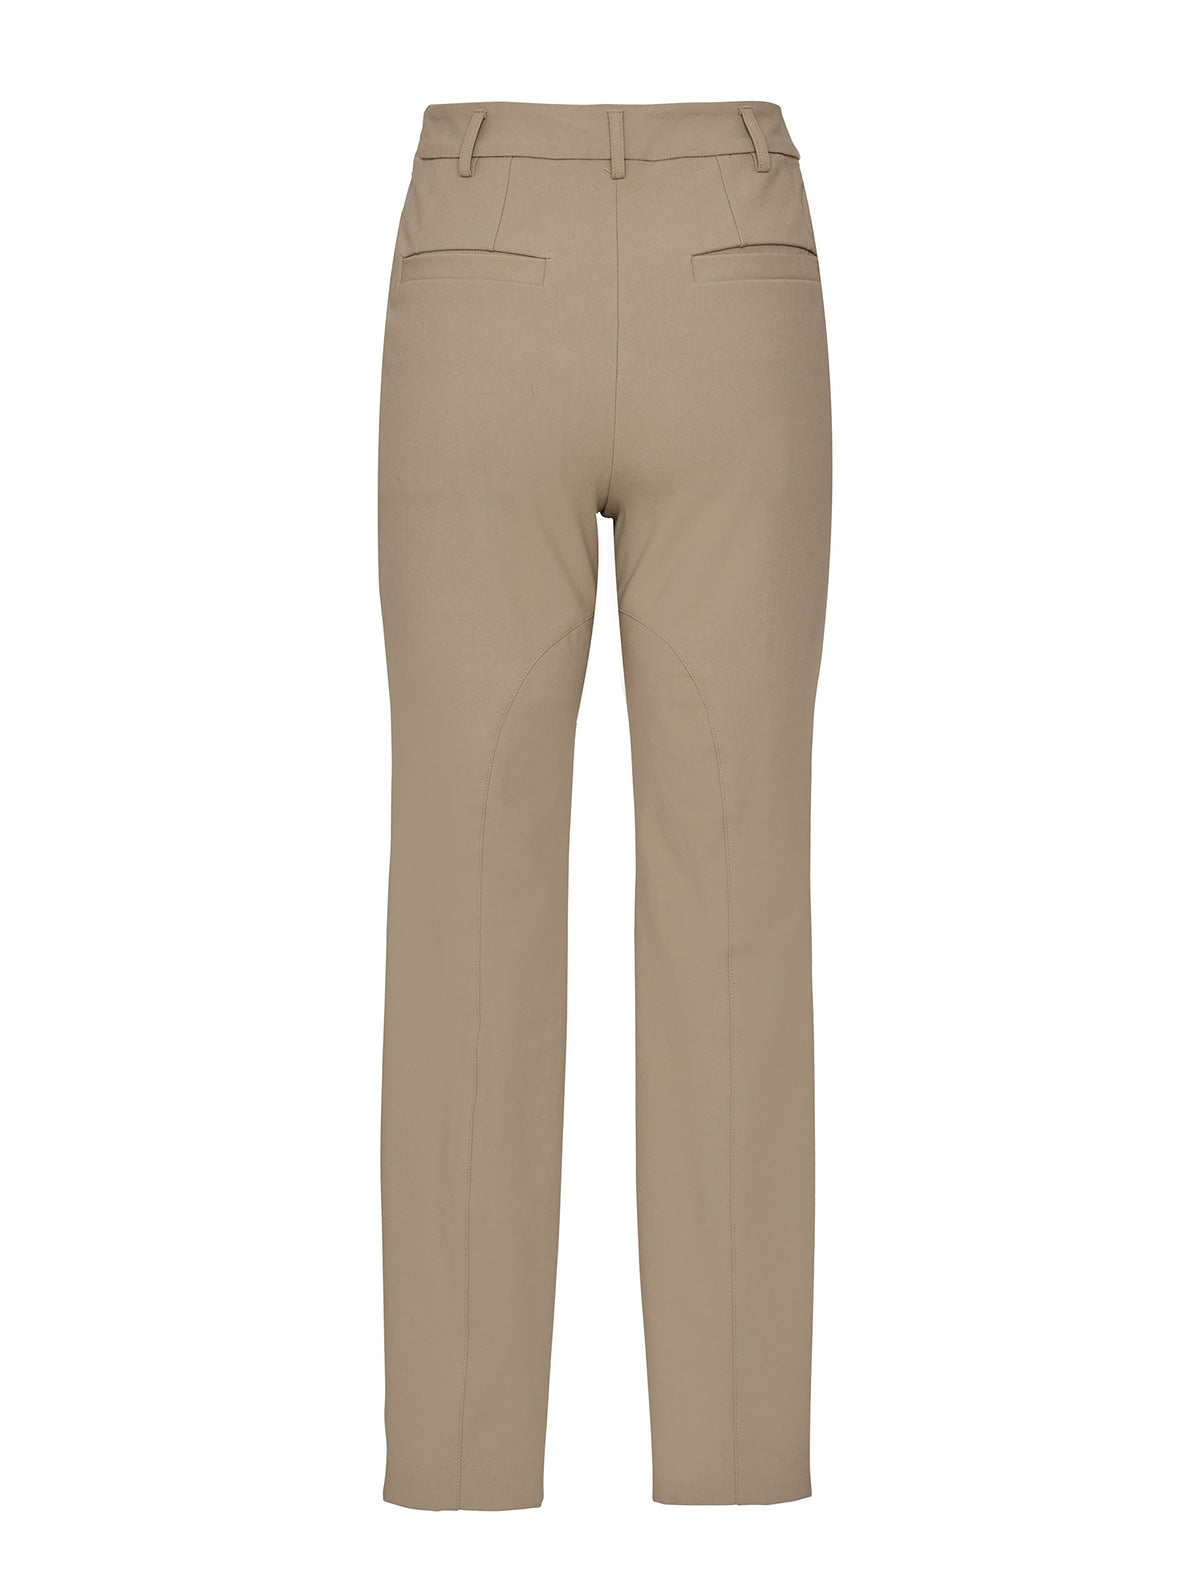 RIDING LEGGINGS, KHAKI